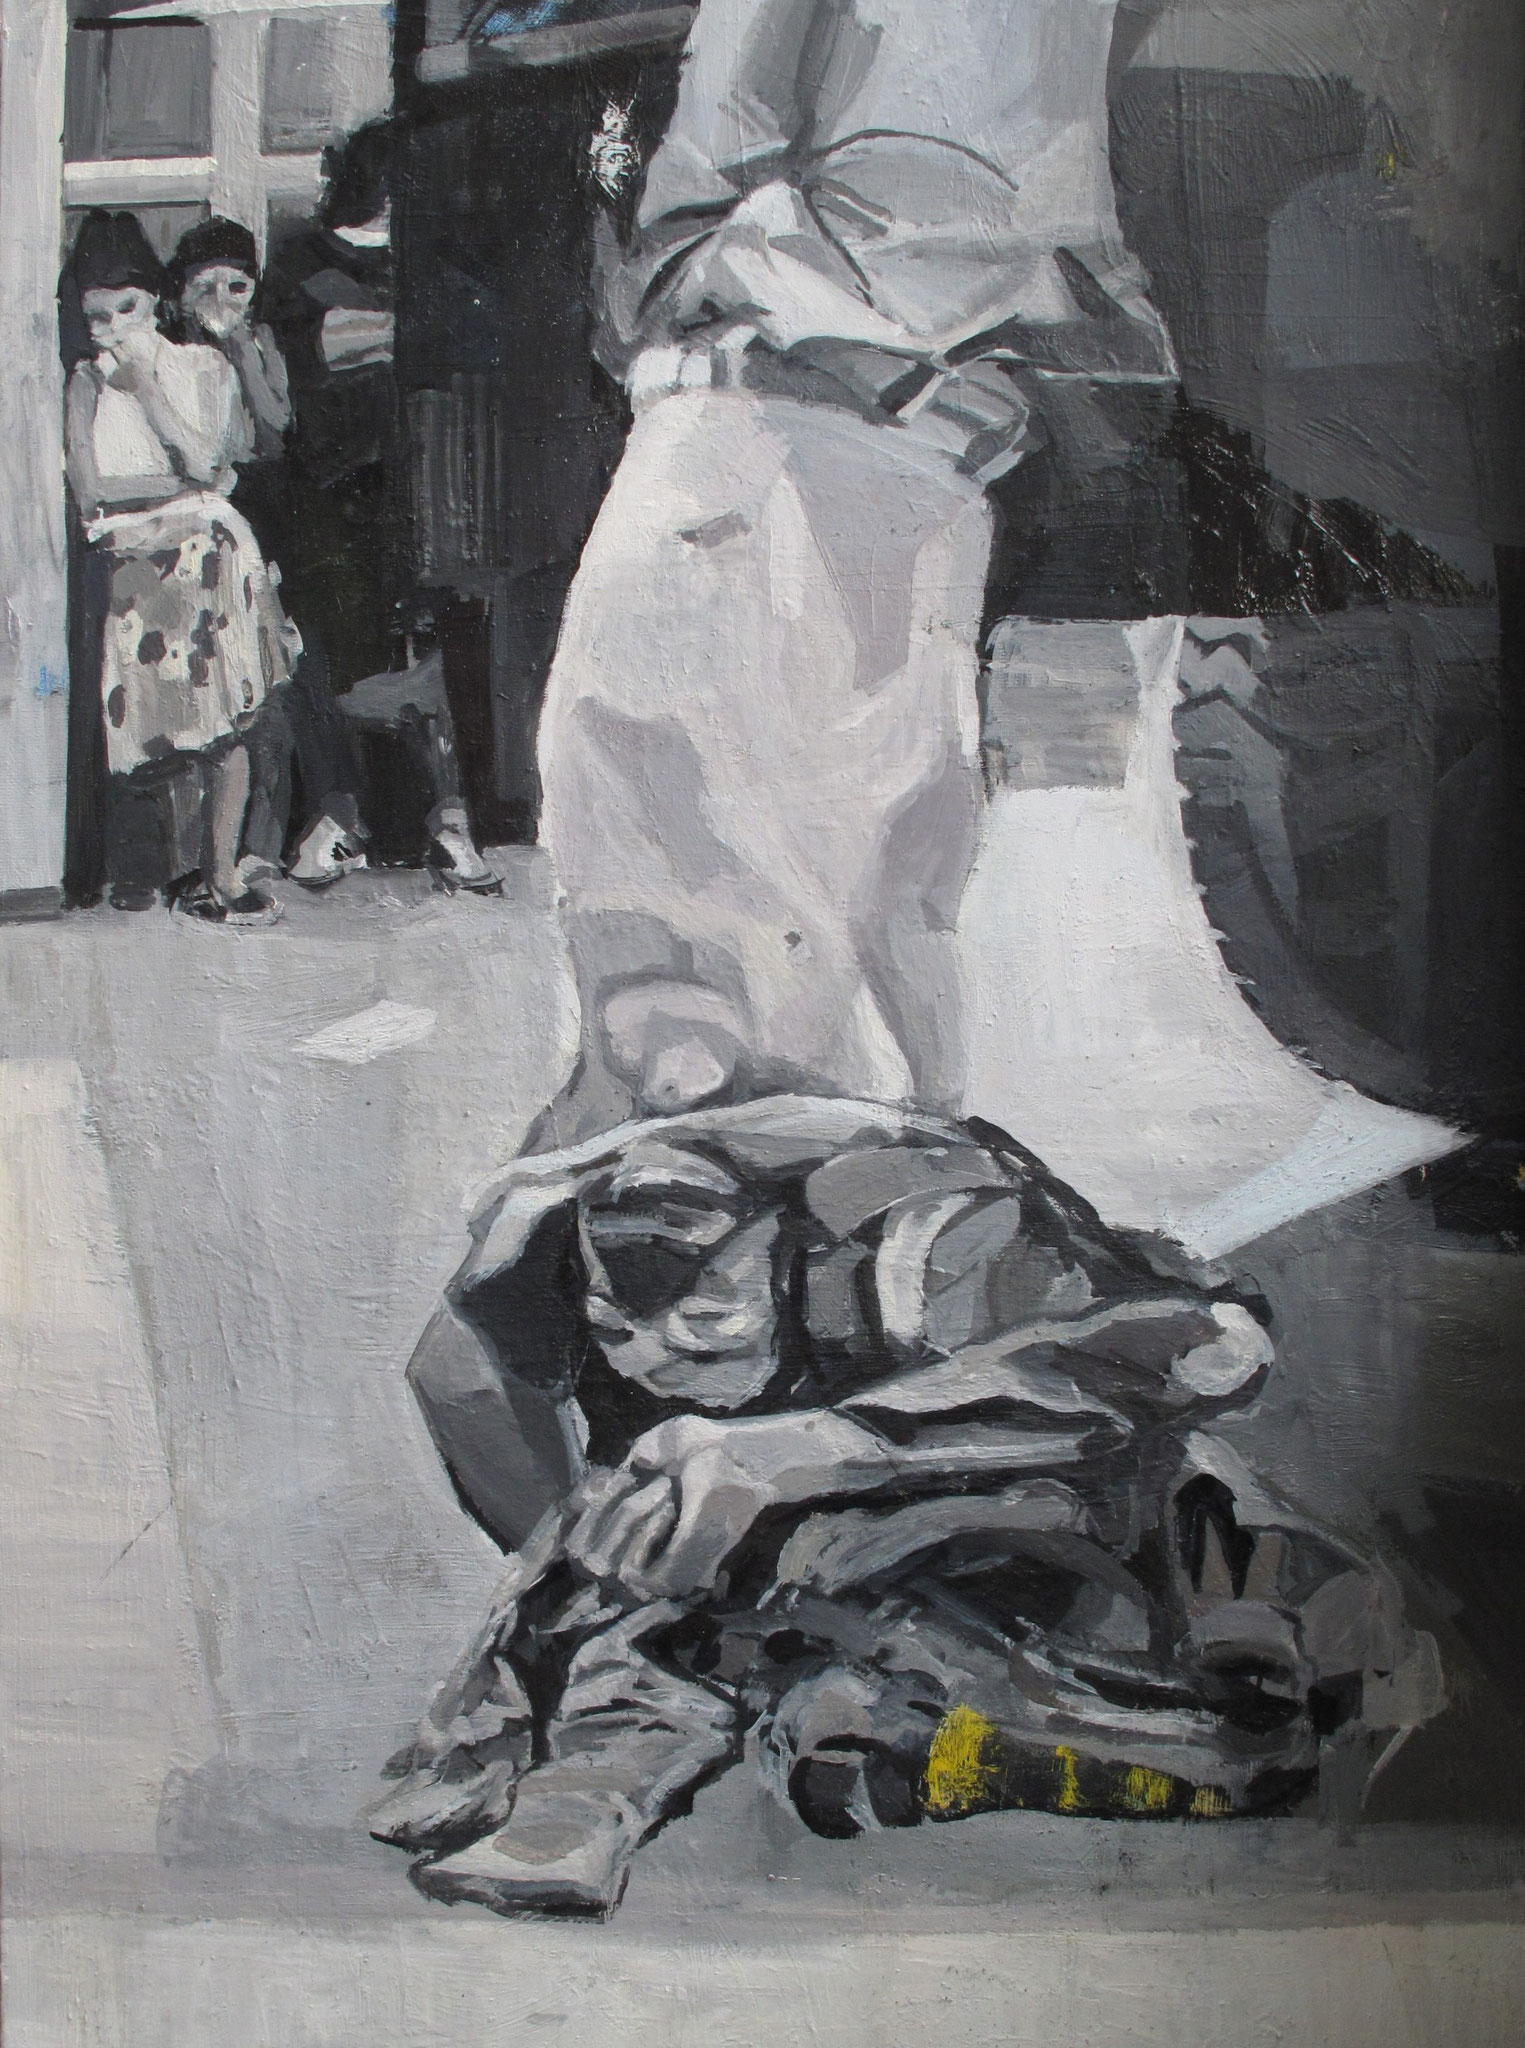 Untitled - Newspapers, Oil on canvas, 2013, 39.3 x 28.7 in.